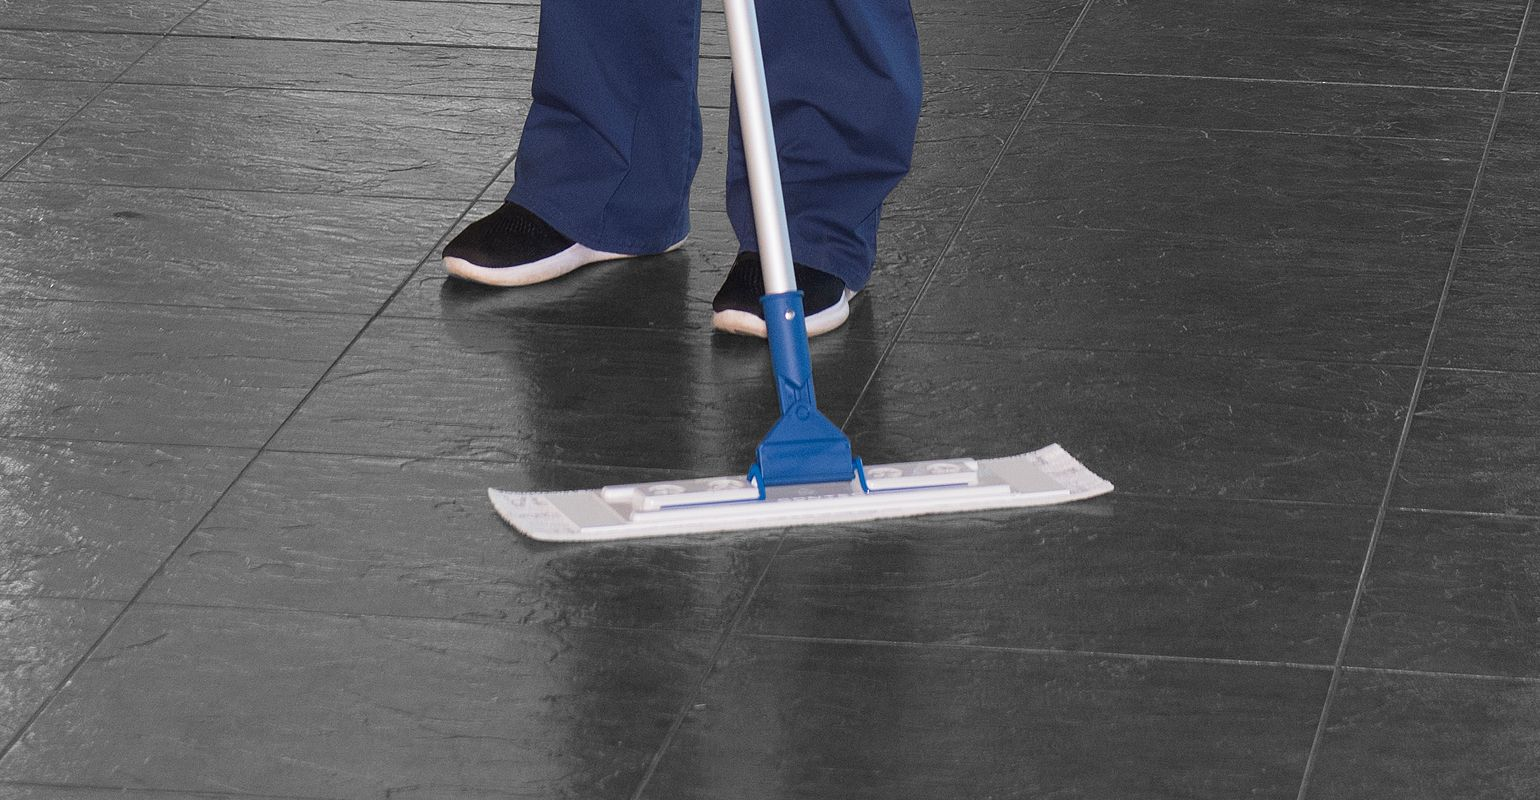 Know the uses of microfiber mop